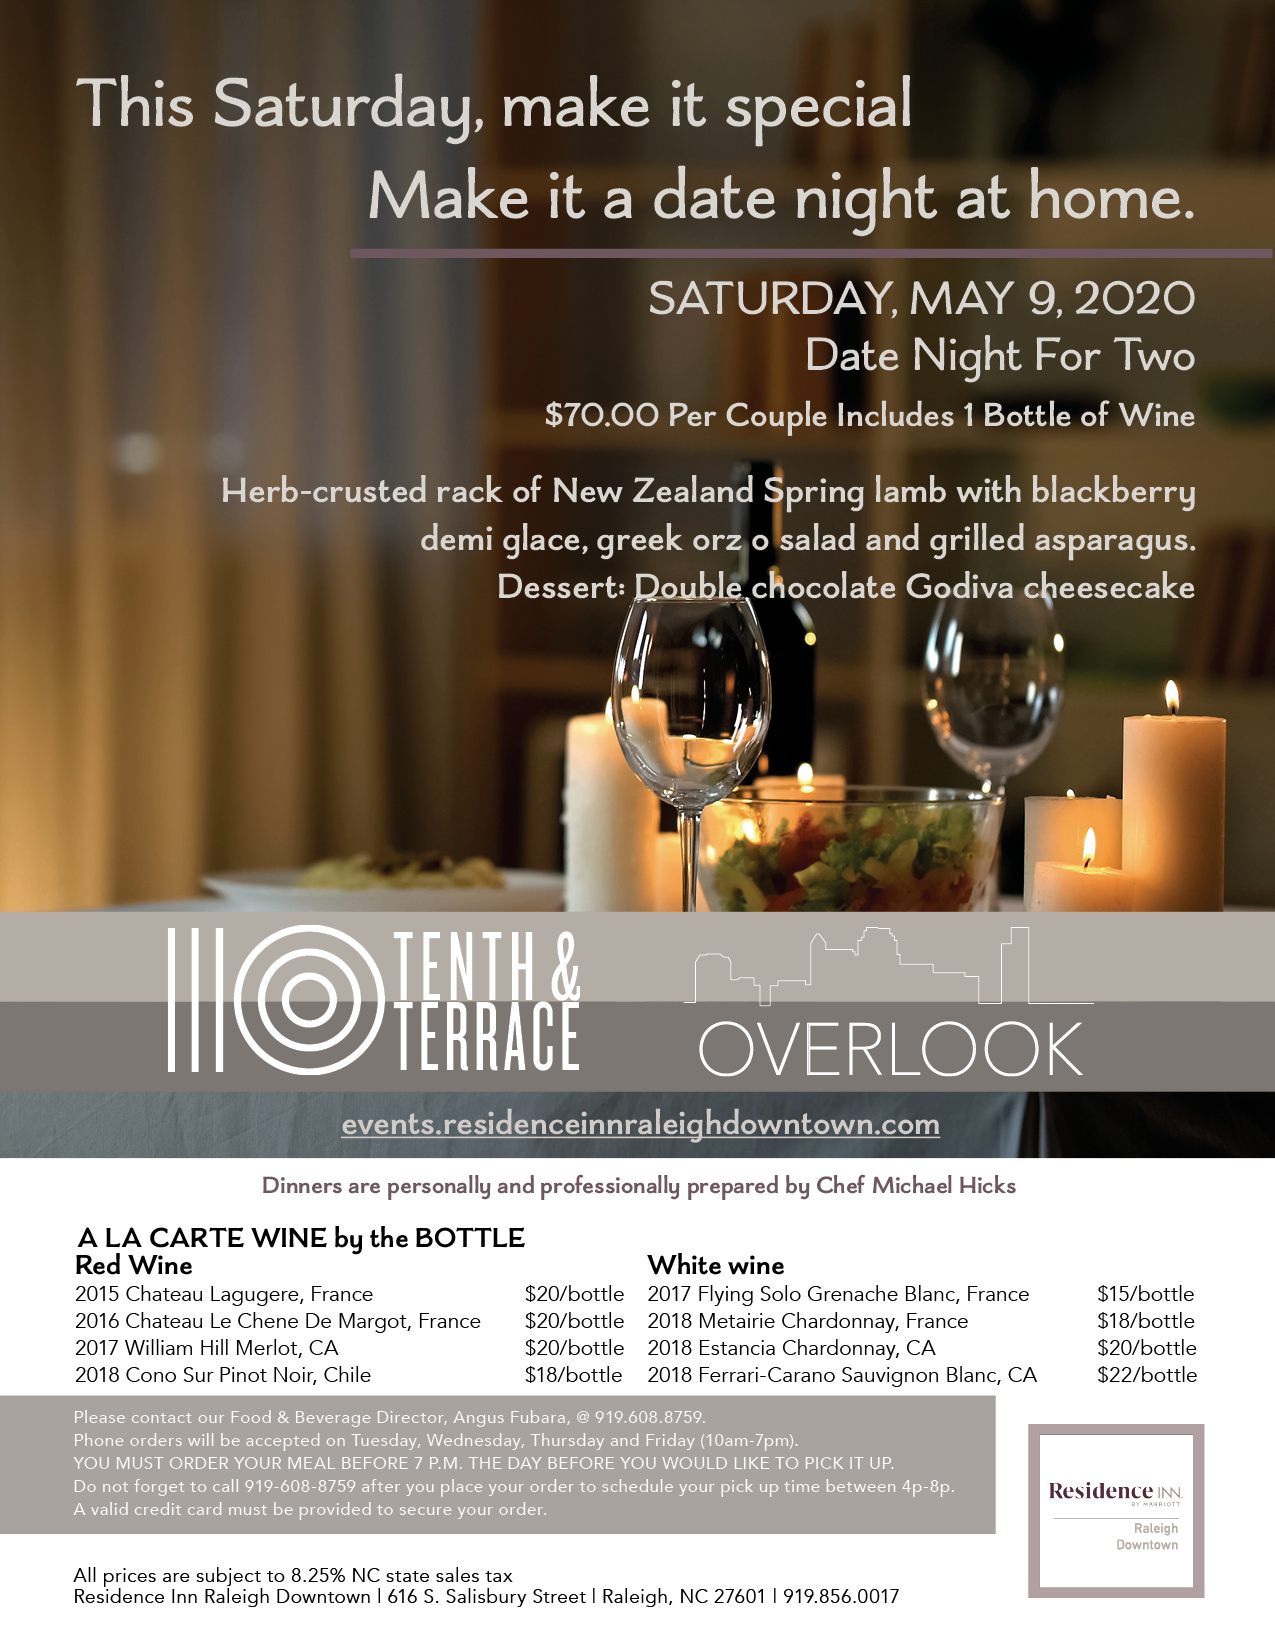 SATURDAY, MAY 9: Date Night for Two